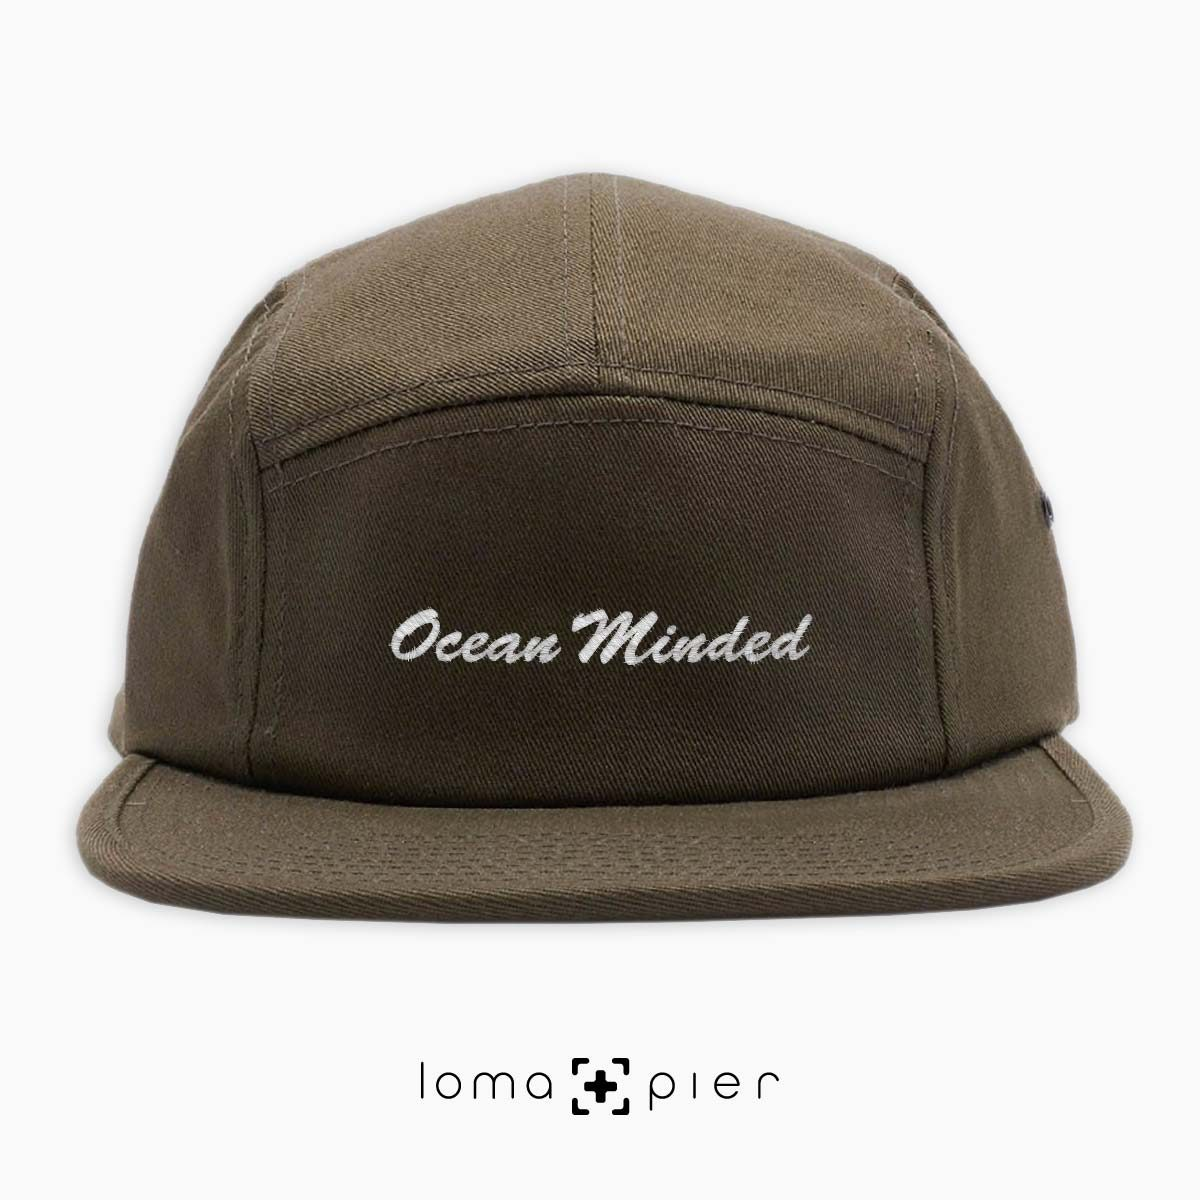 OCEAN MINDED embroidered on an olive green cotton 5-panel hat by loma+pier hat store